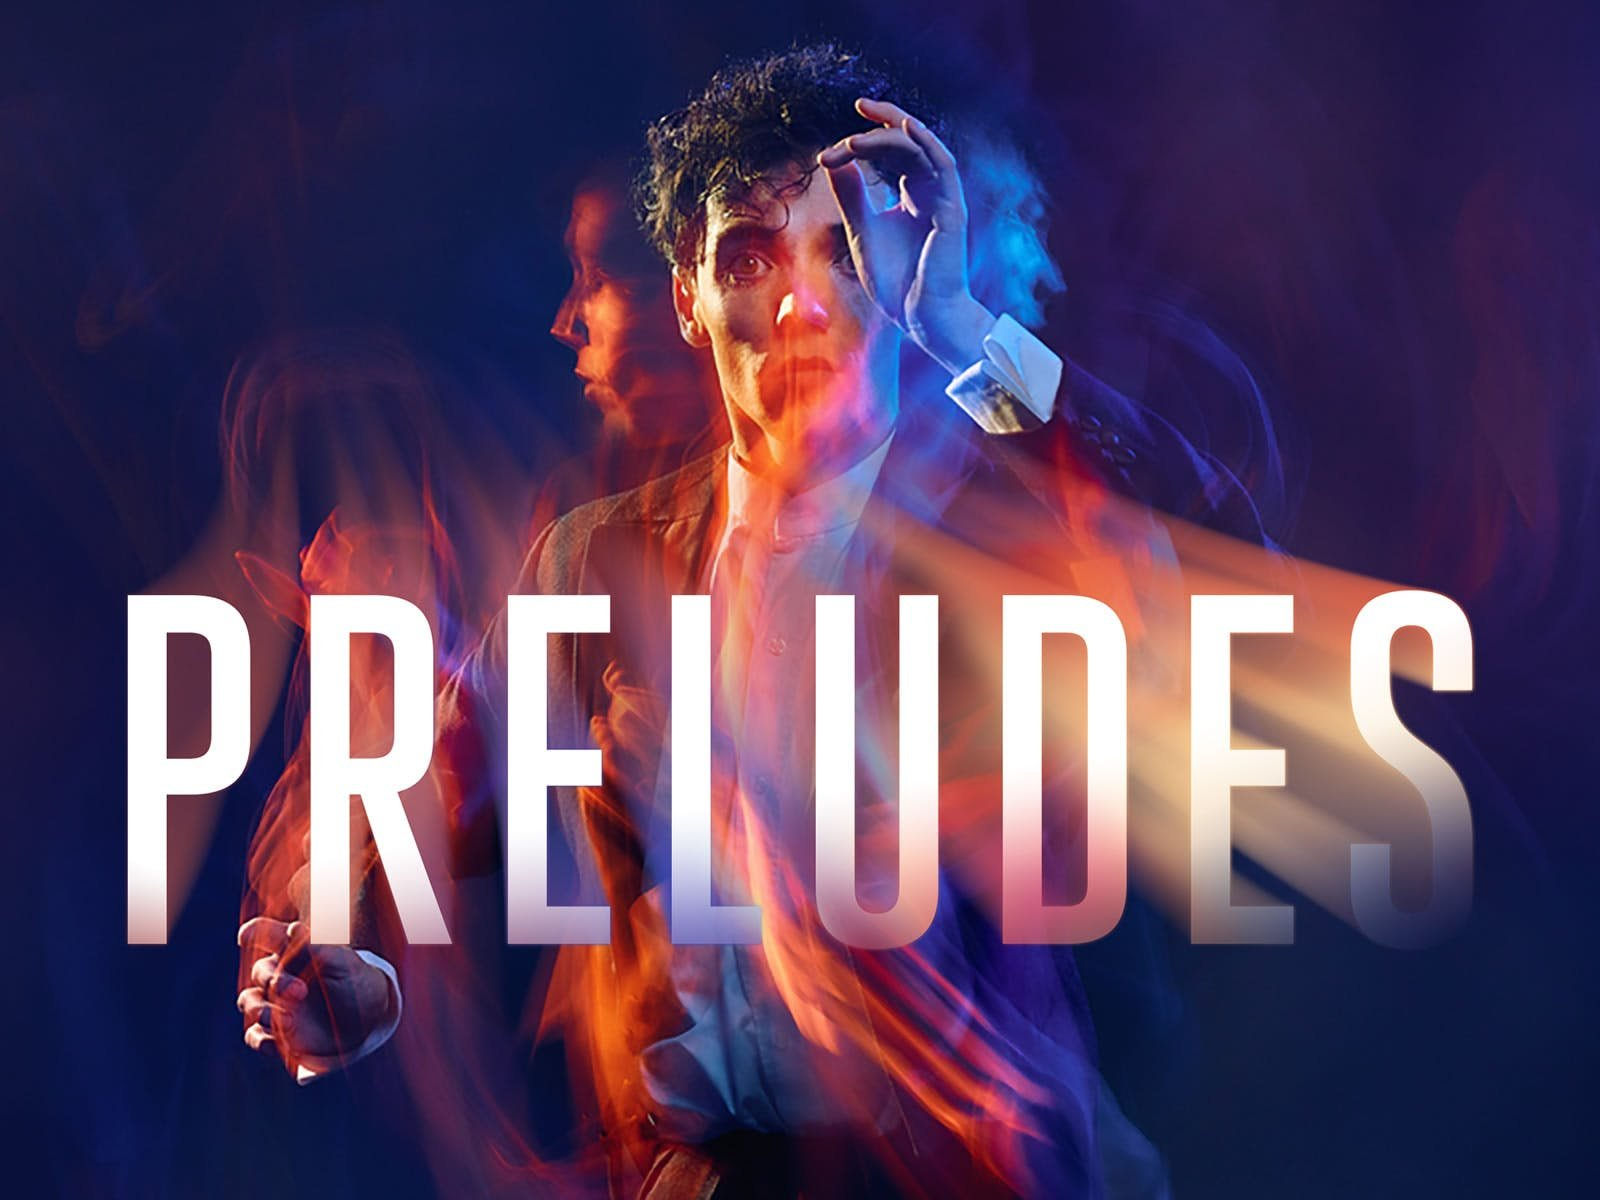 Poster image for Preludes